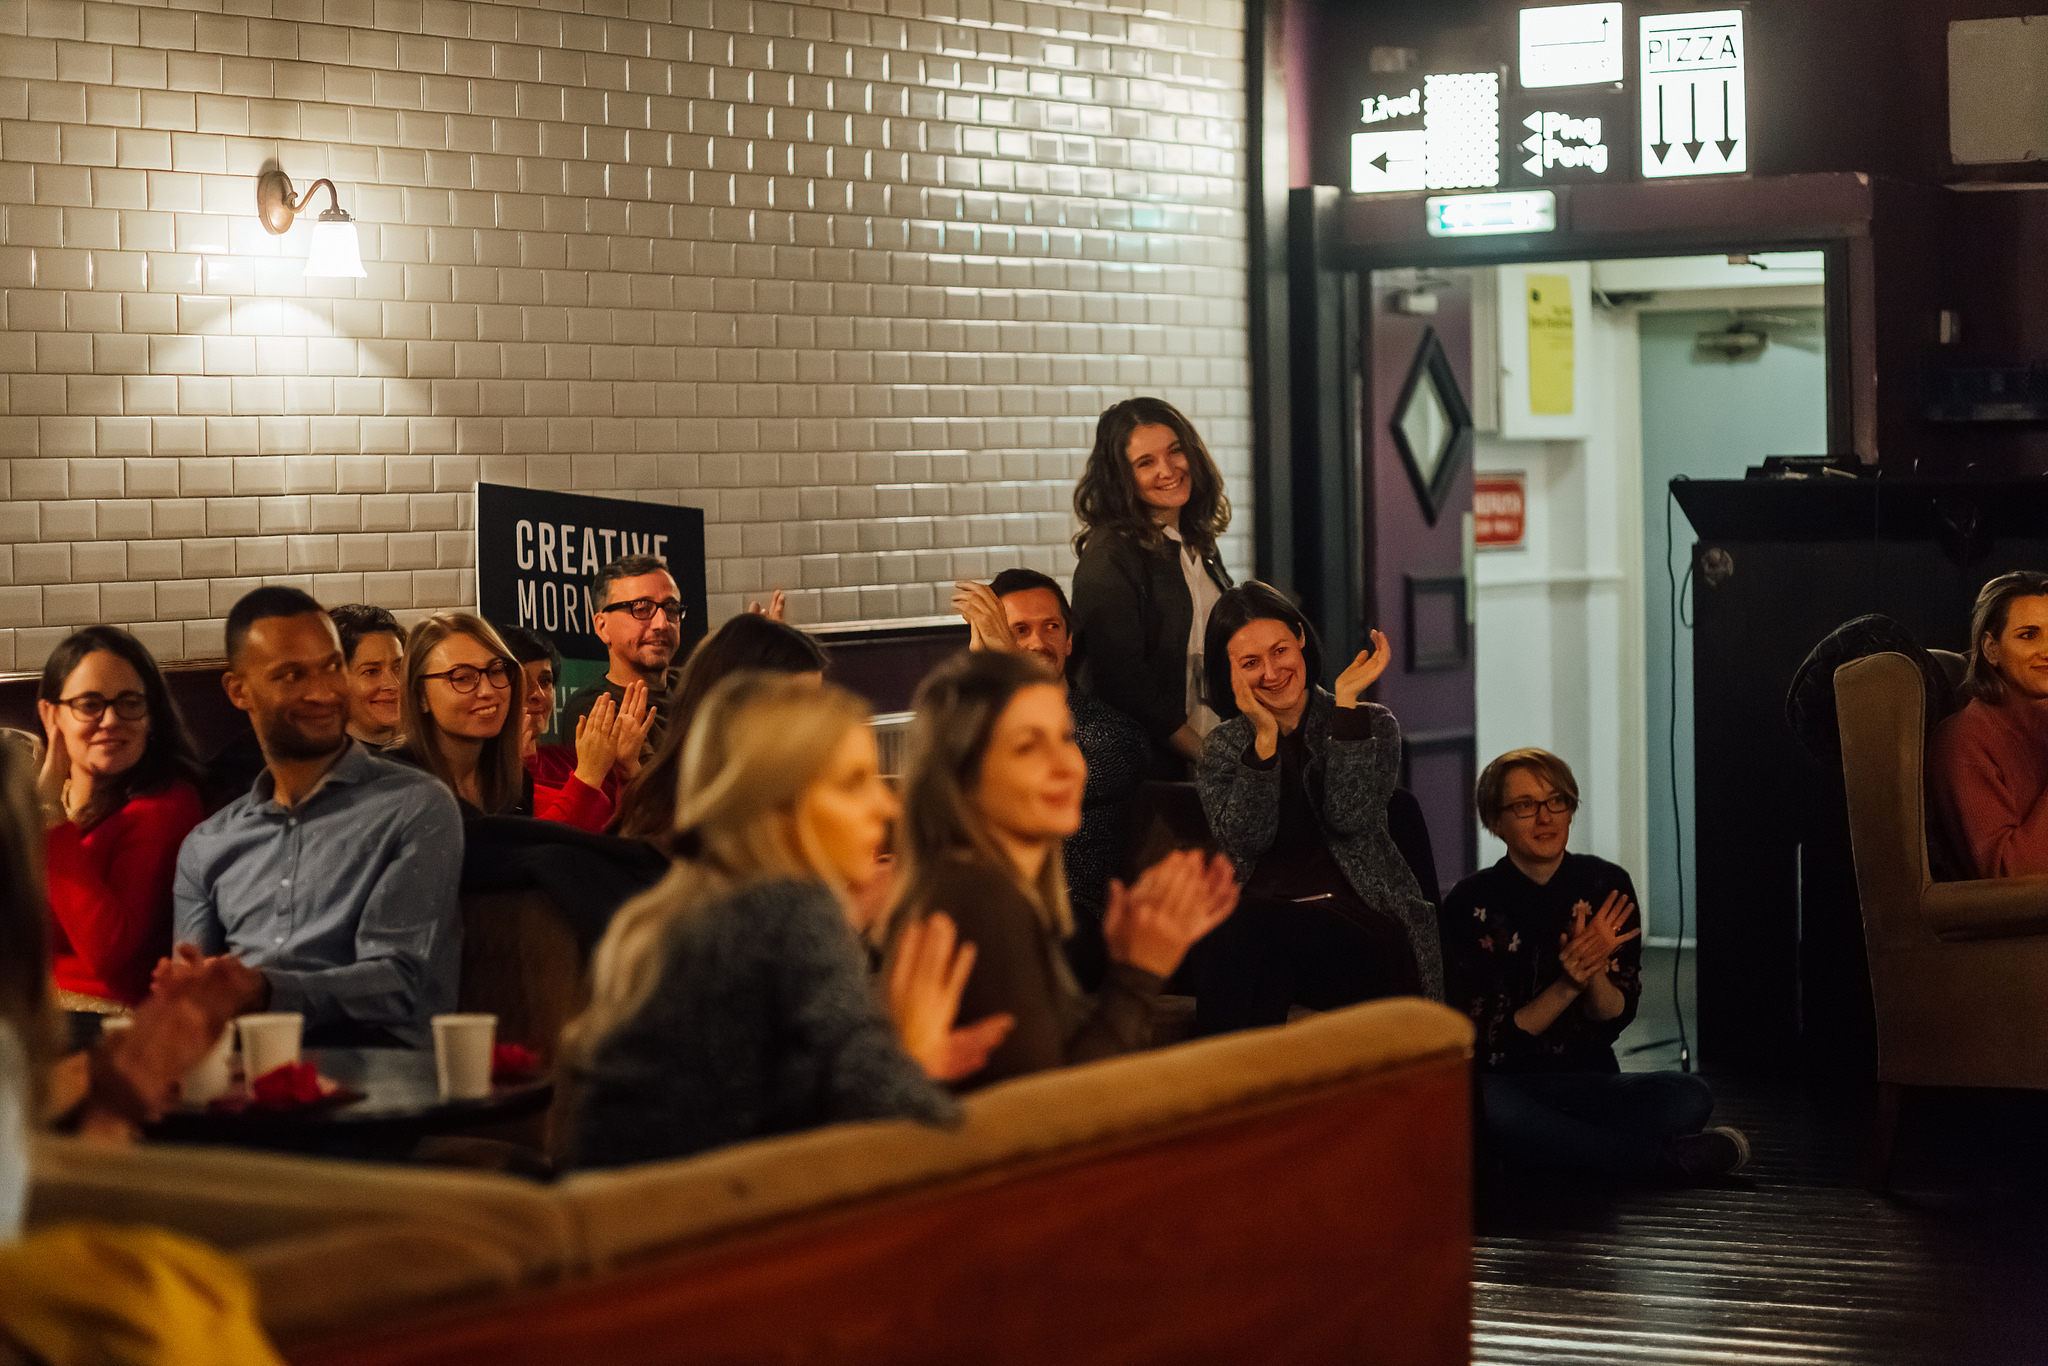 photo: Helena Dolby @ Picture House Social